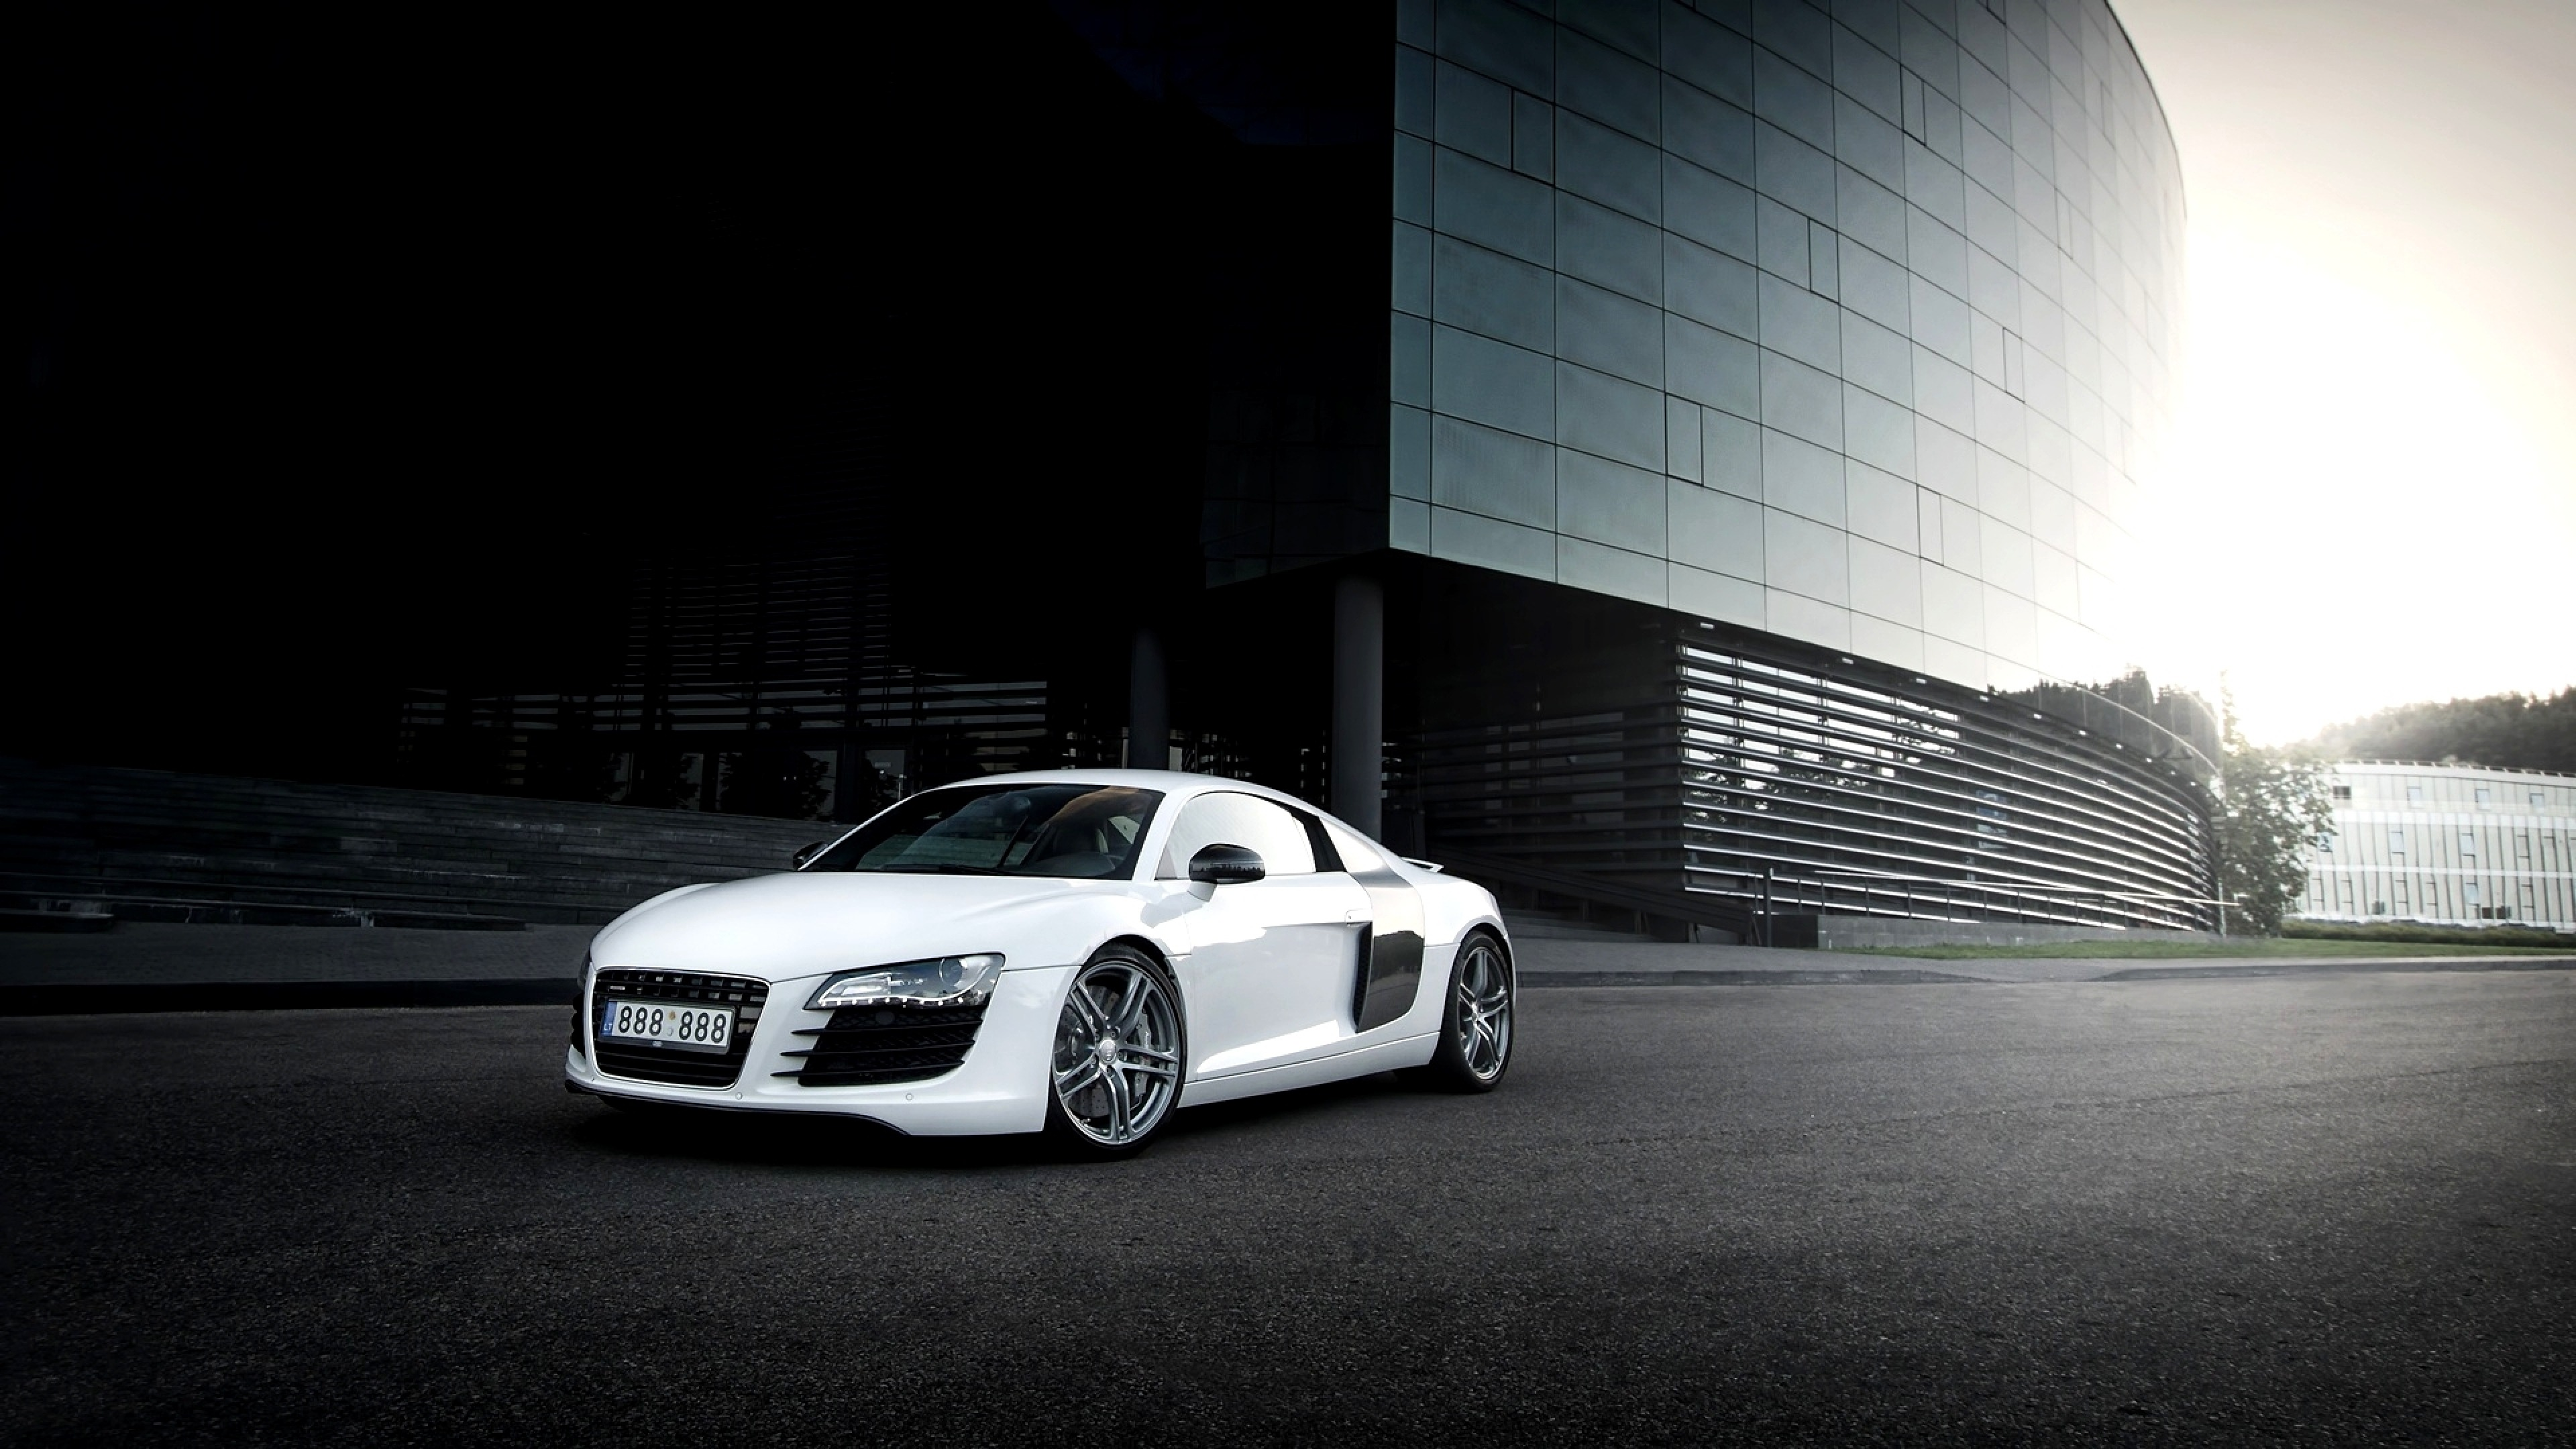 Audi-R8-Wallpaper-Hd-Backgrounds-Wallpaperaudi-White-Buildingultra-For-Androids